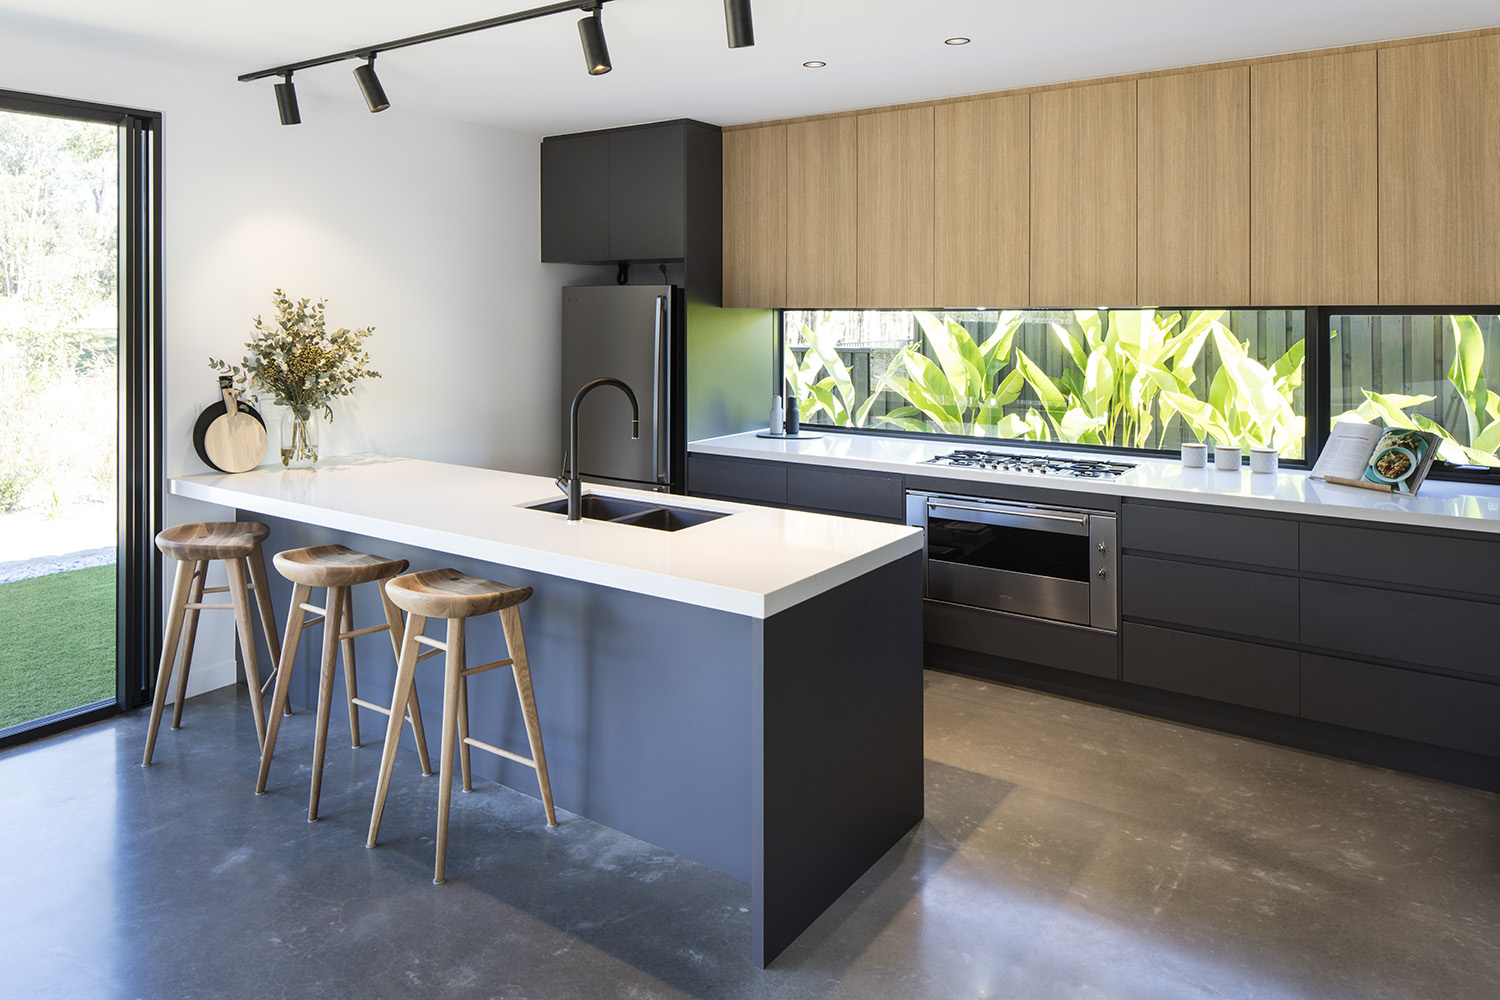 Gallery Of Balgownie By Dayne Lawrie Constructions Local Australian Design And Interiors Peregian Springs, Qld Image 24